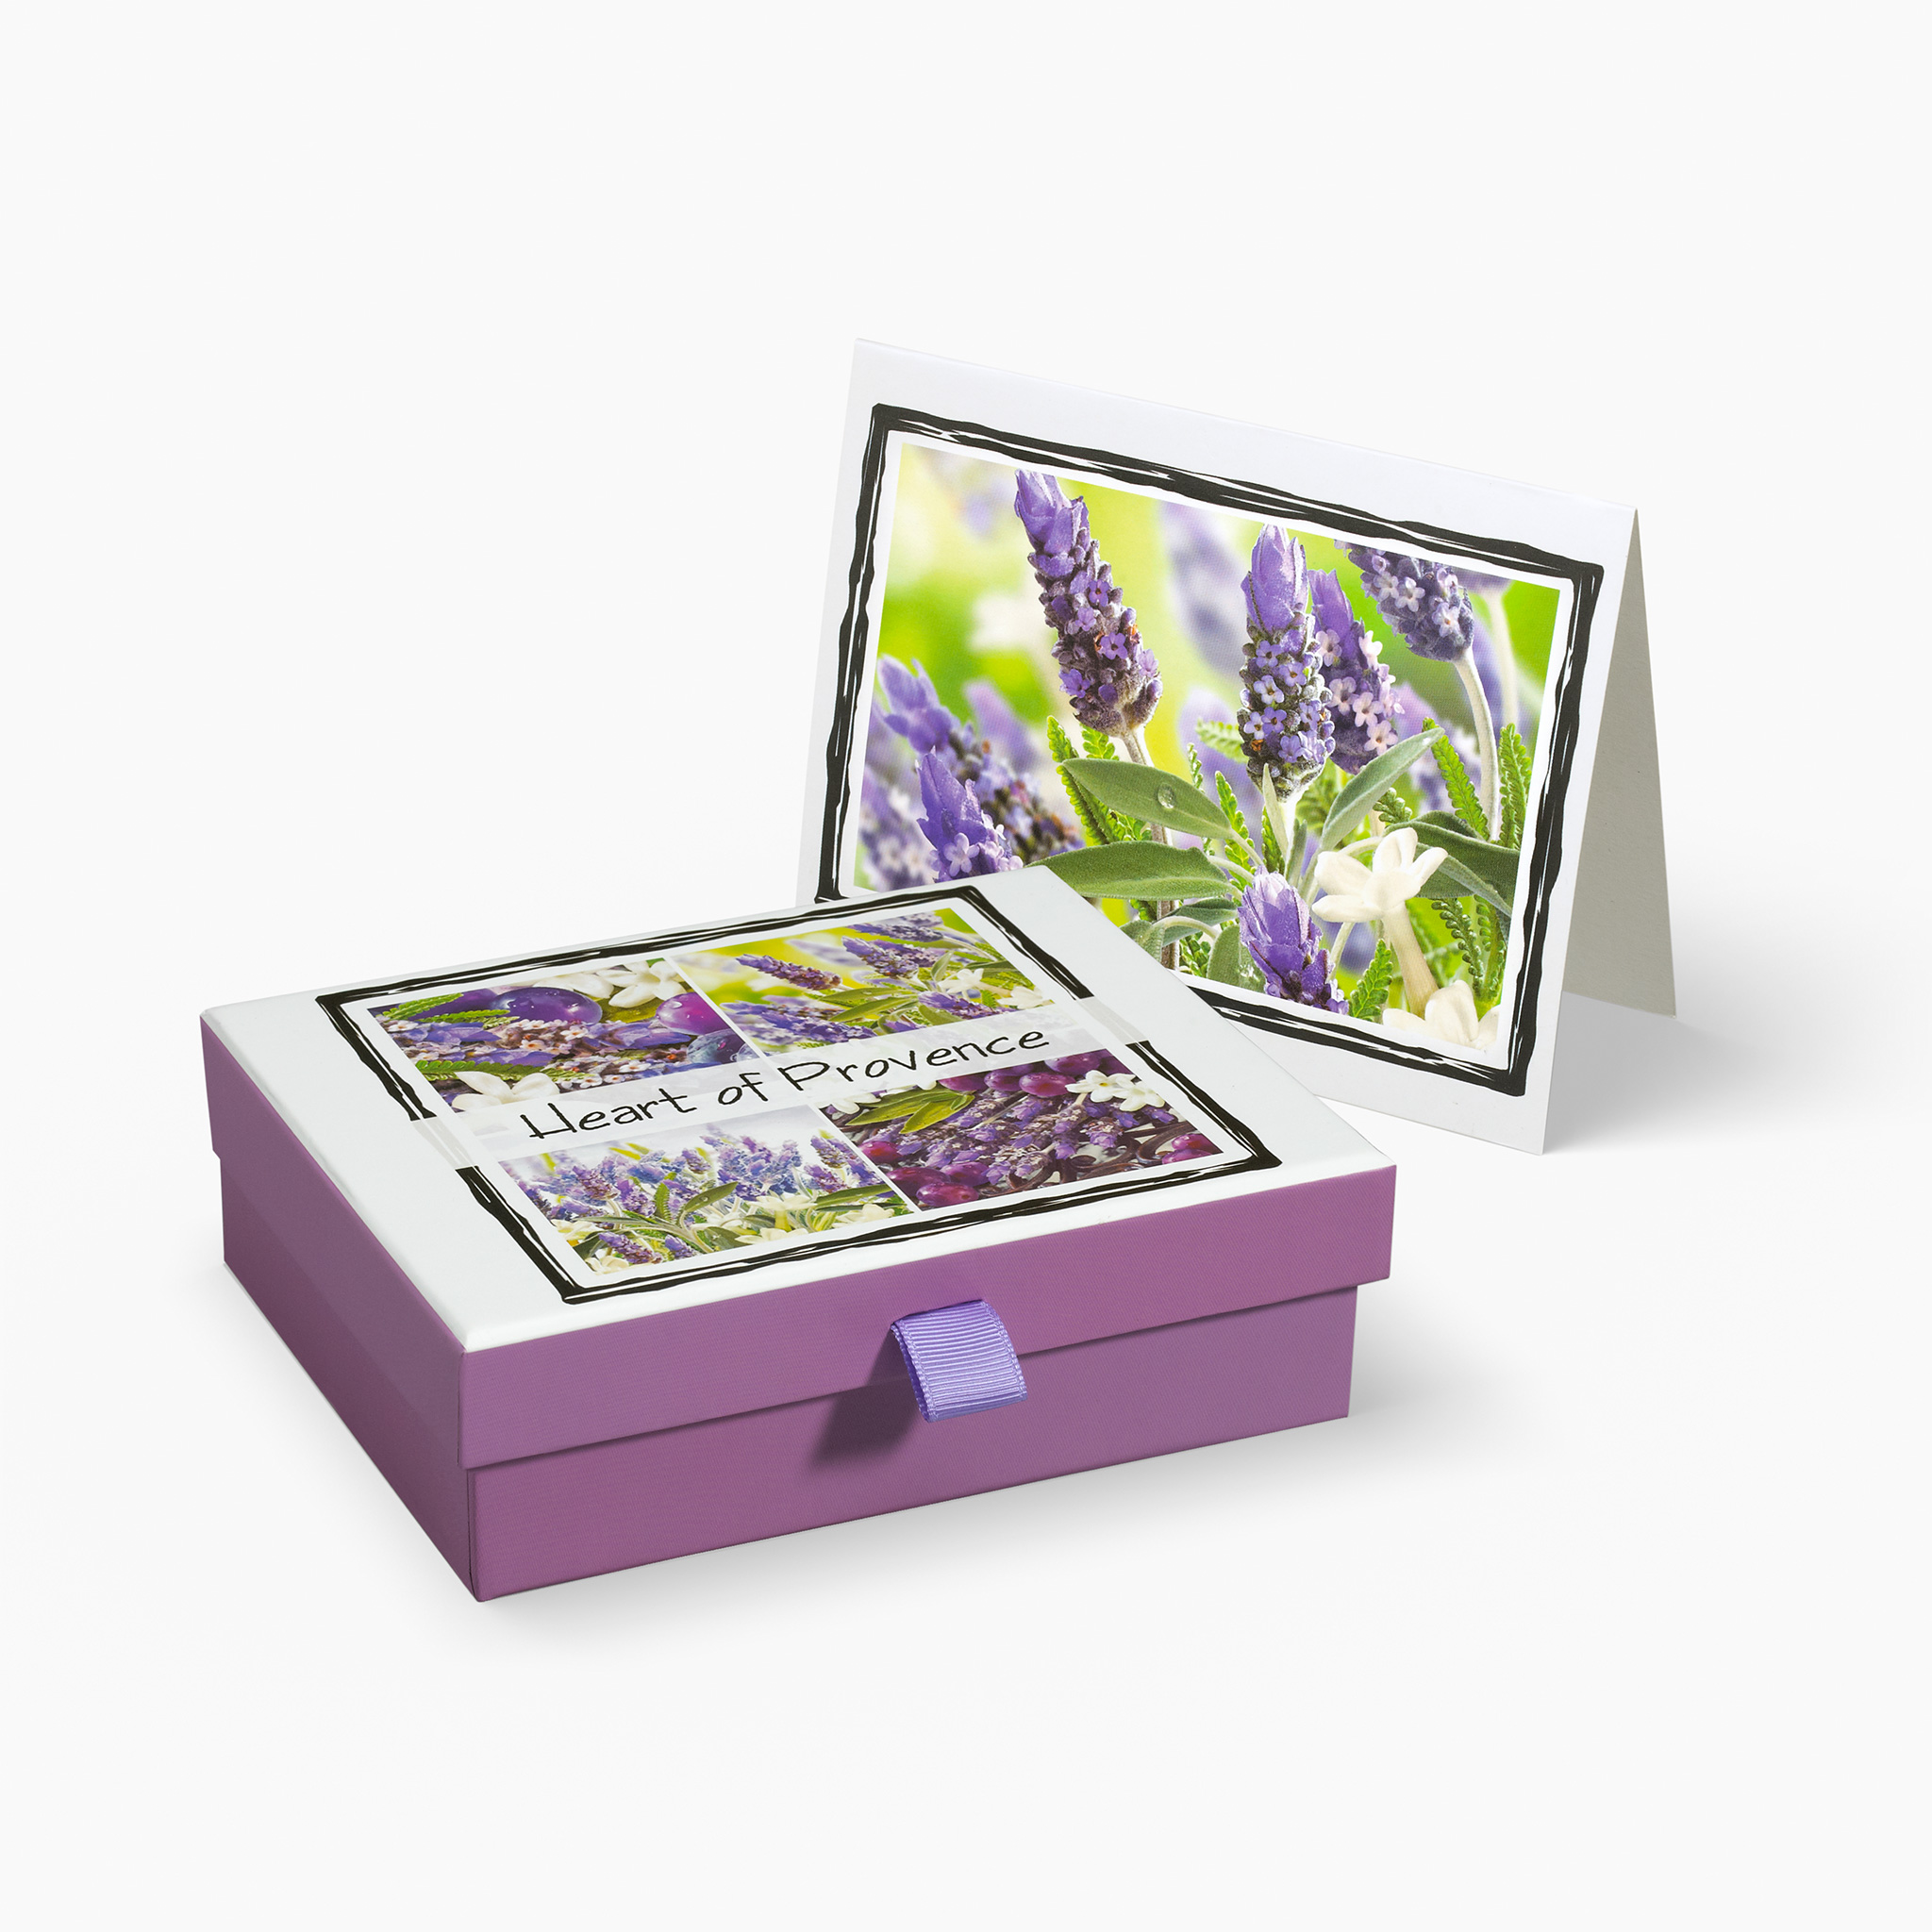 Nabila K's Heart of Provence Card and Envelope Stationary with a box holding the cardss